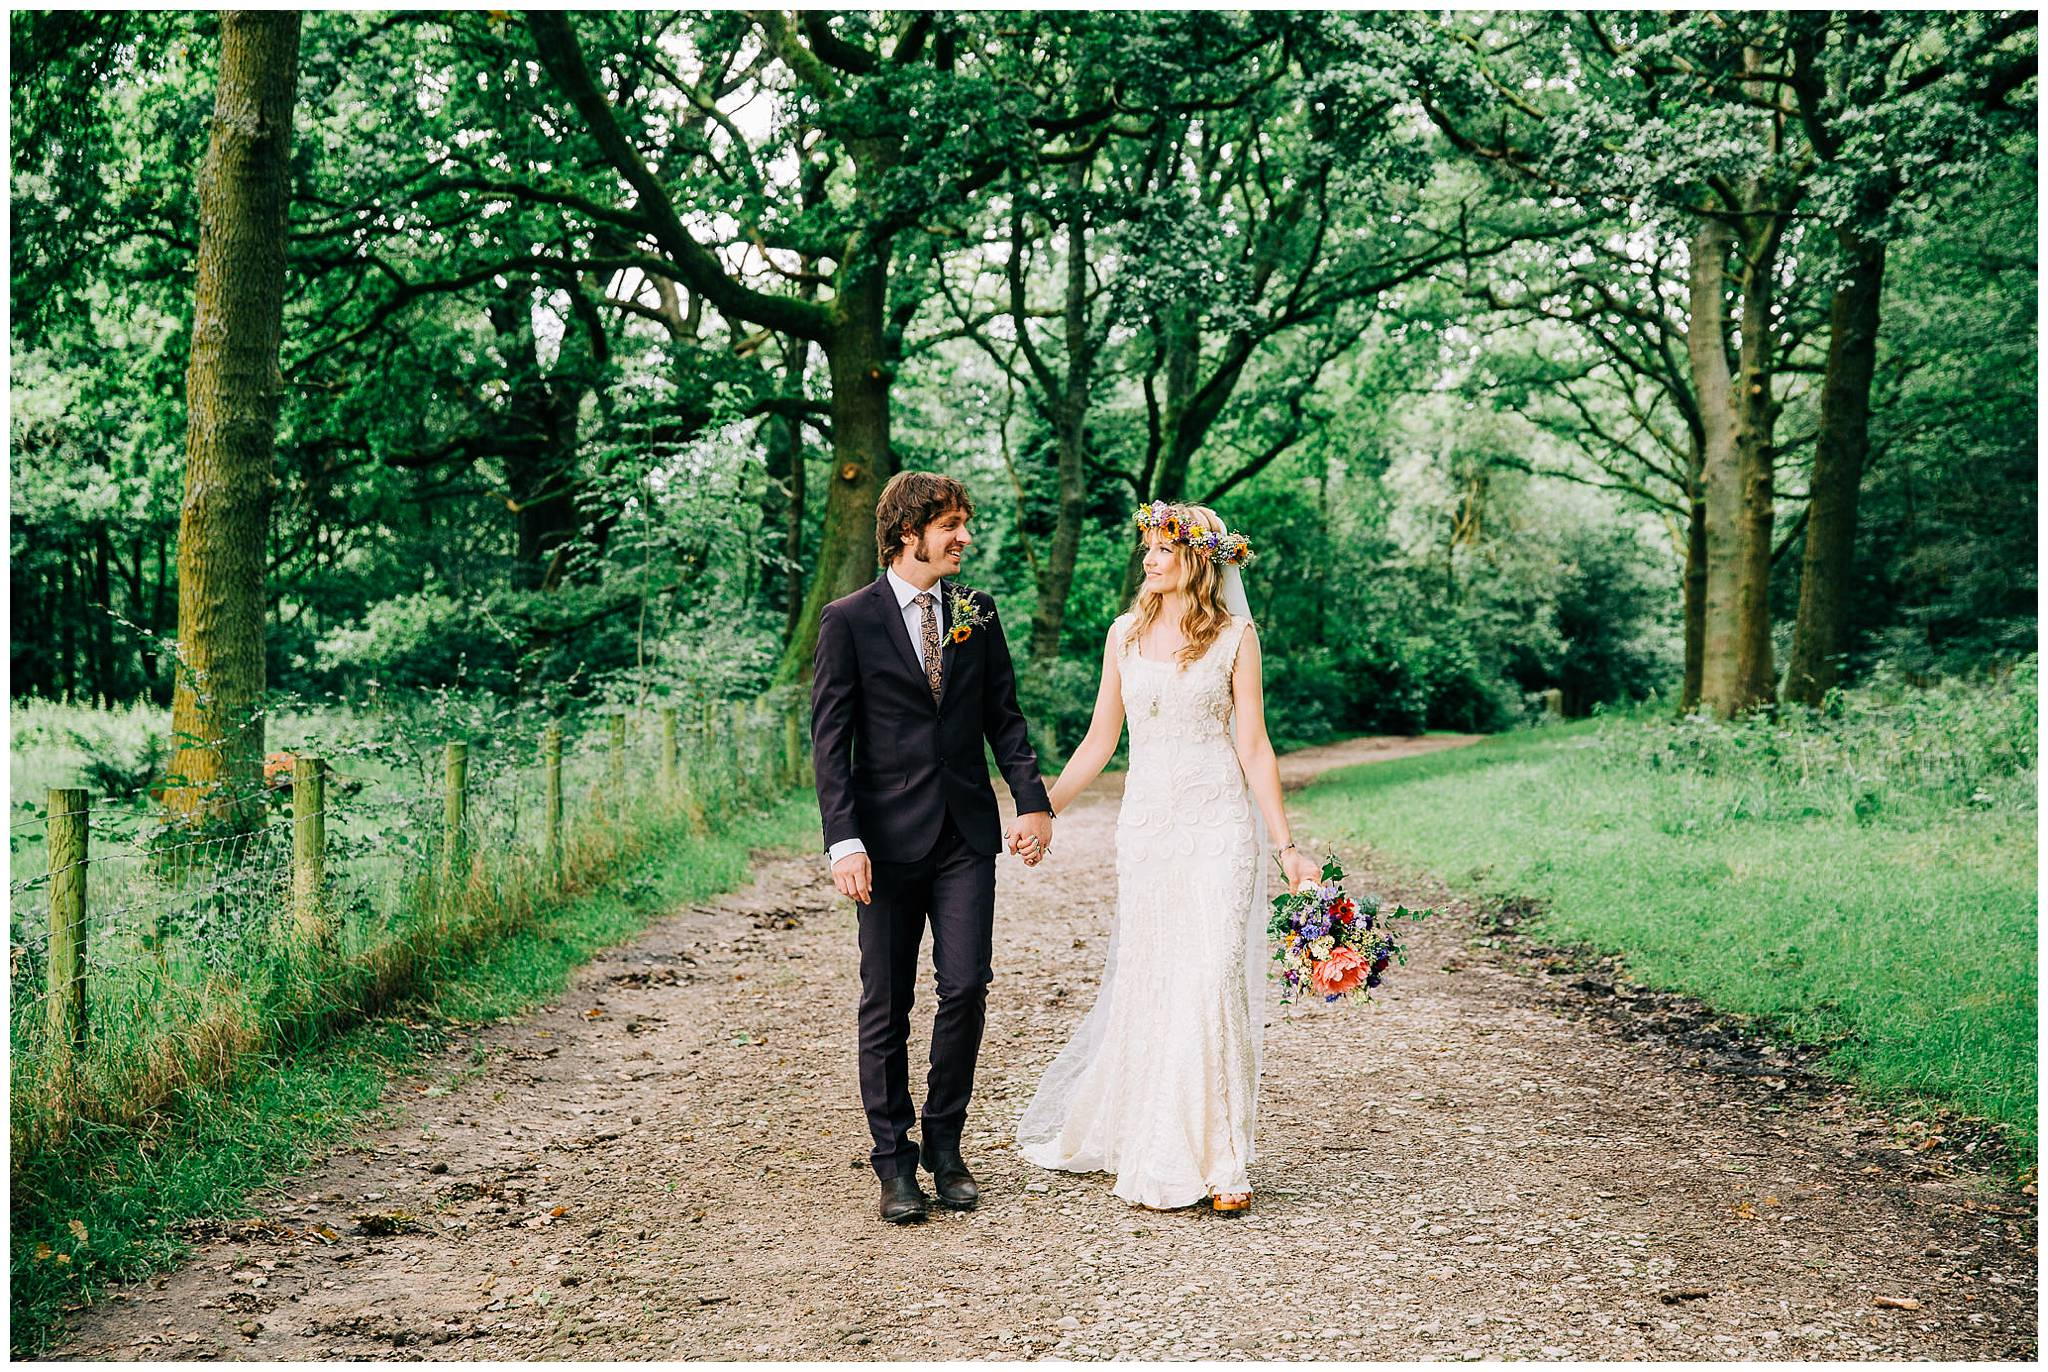 bride and groom walking and smiling at each other on woodland path